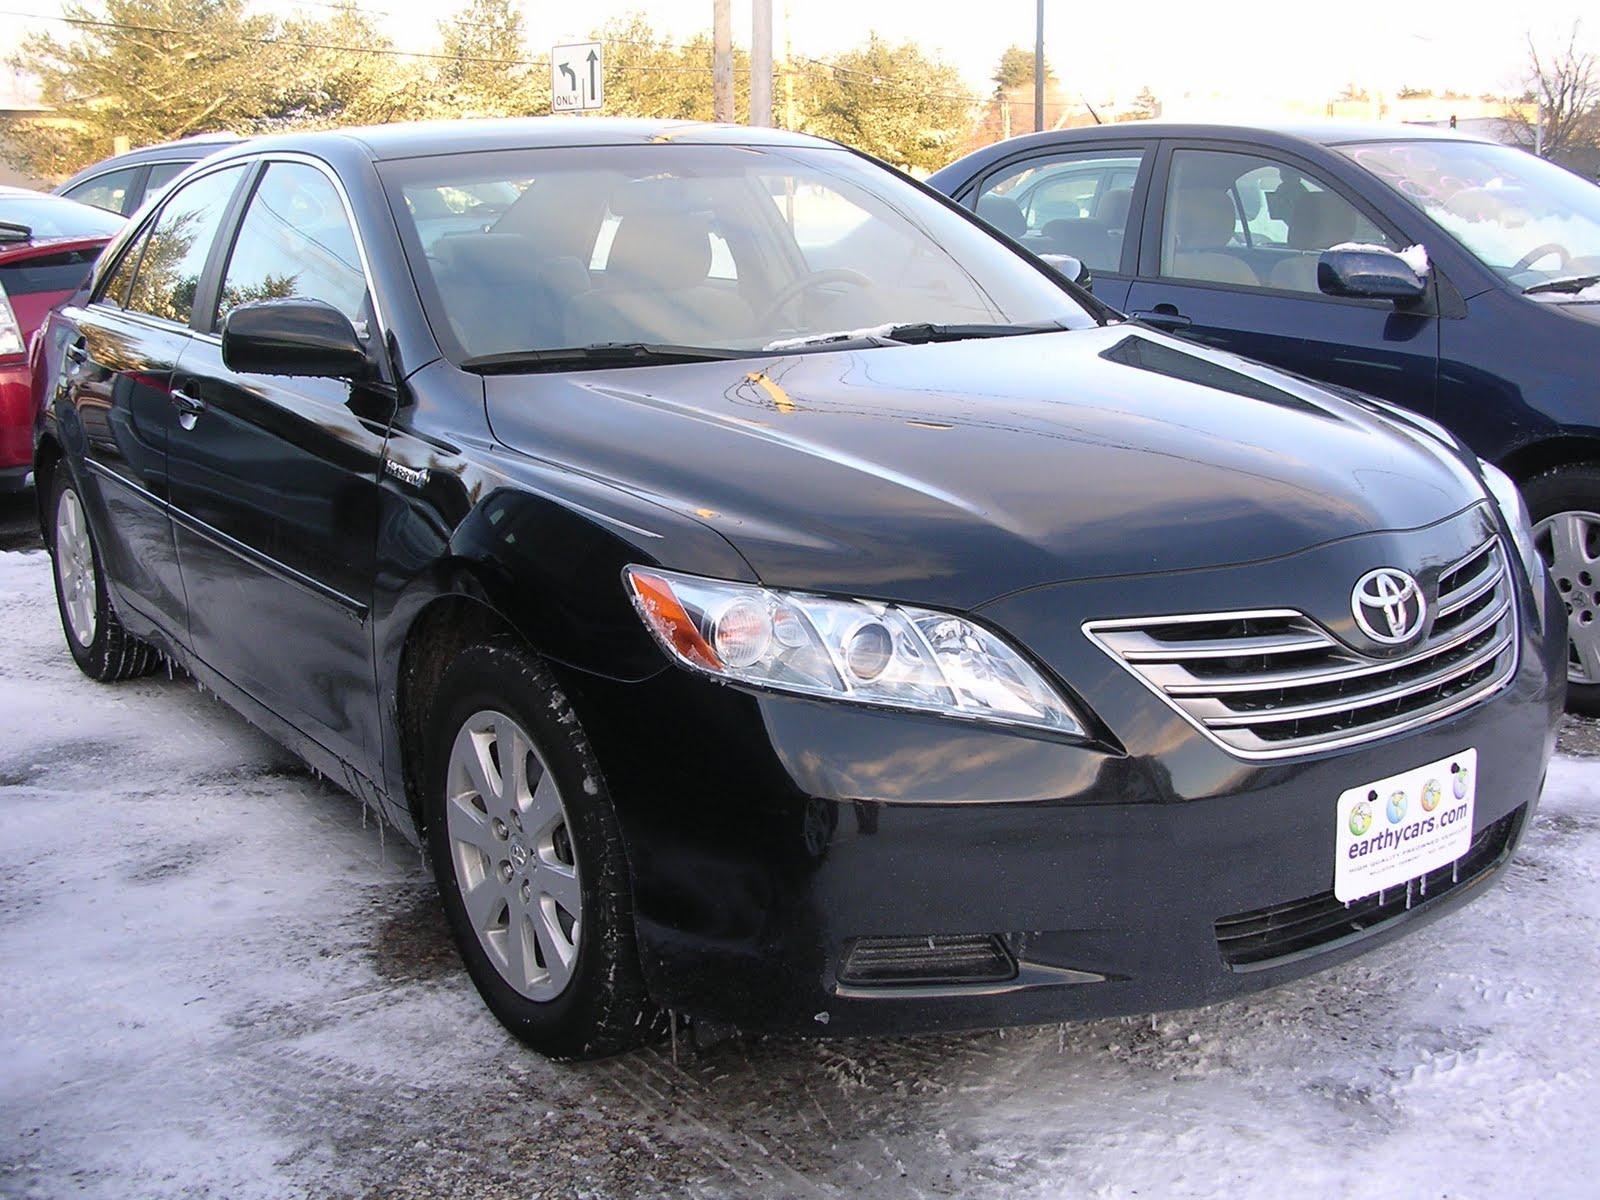 Great 2009 Toyota Camry Hybrid, Black, Sedan, 45006 Mi, $16,900  Http://ht.ly/3pI8z MPG U003d 33/34 ...